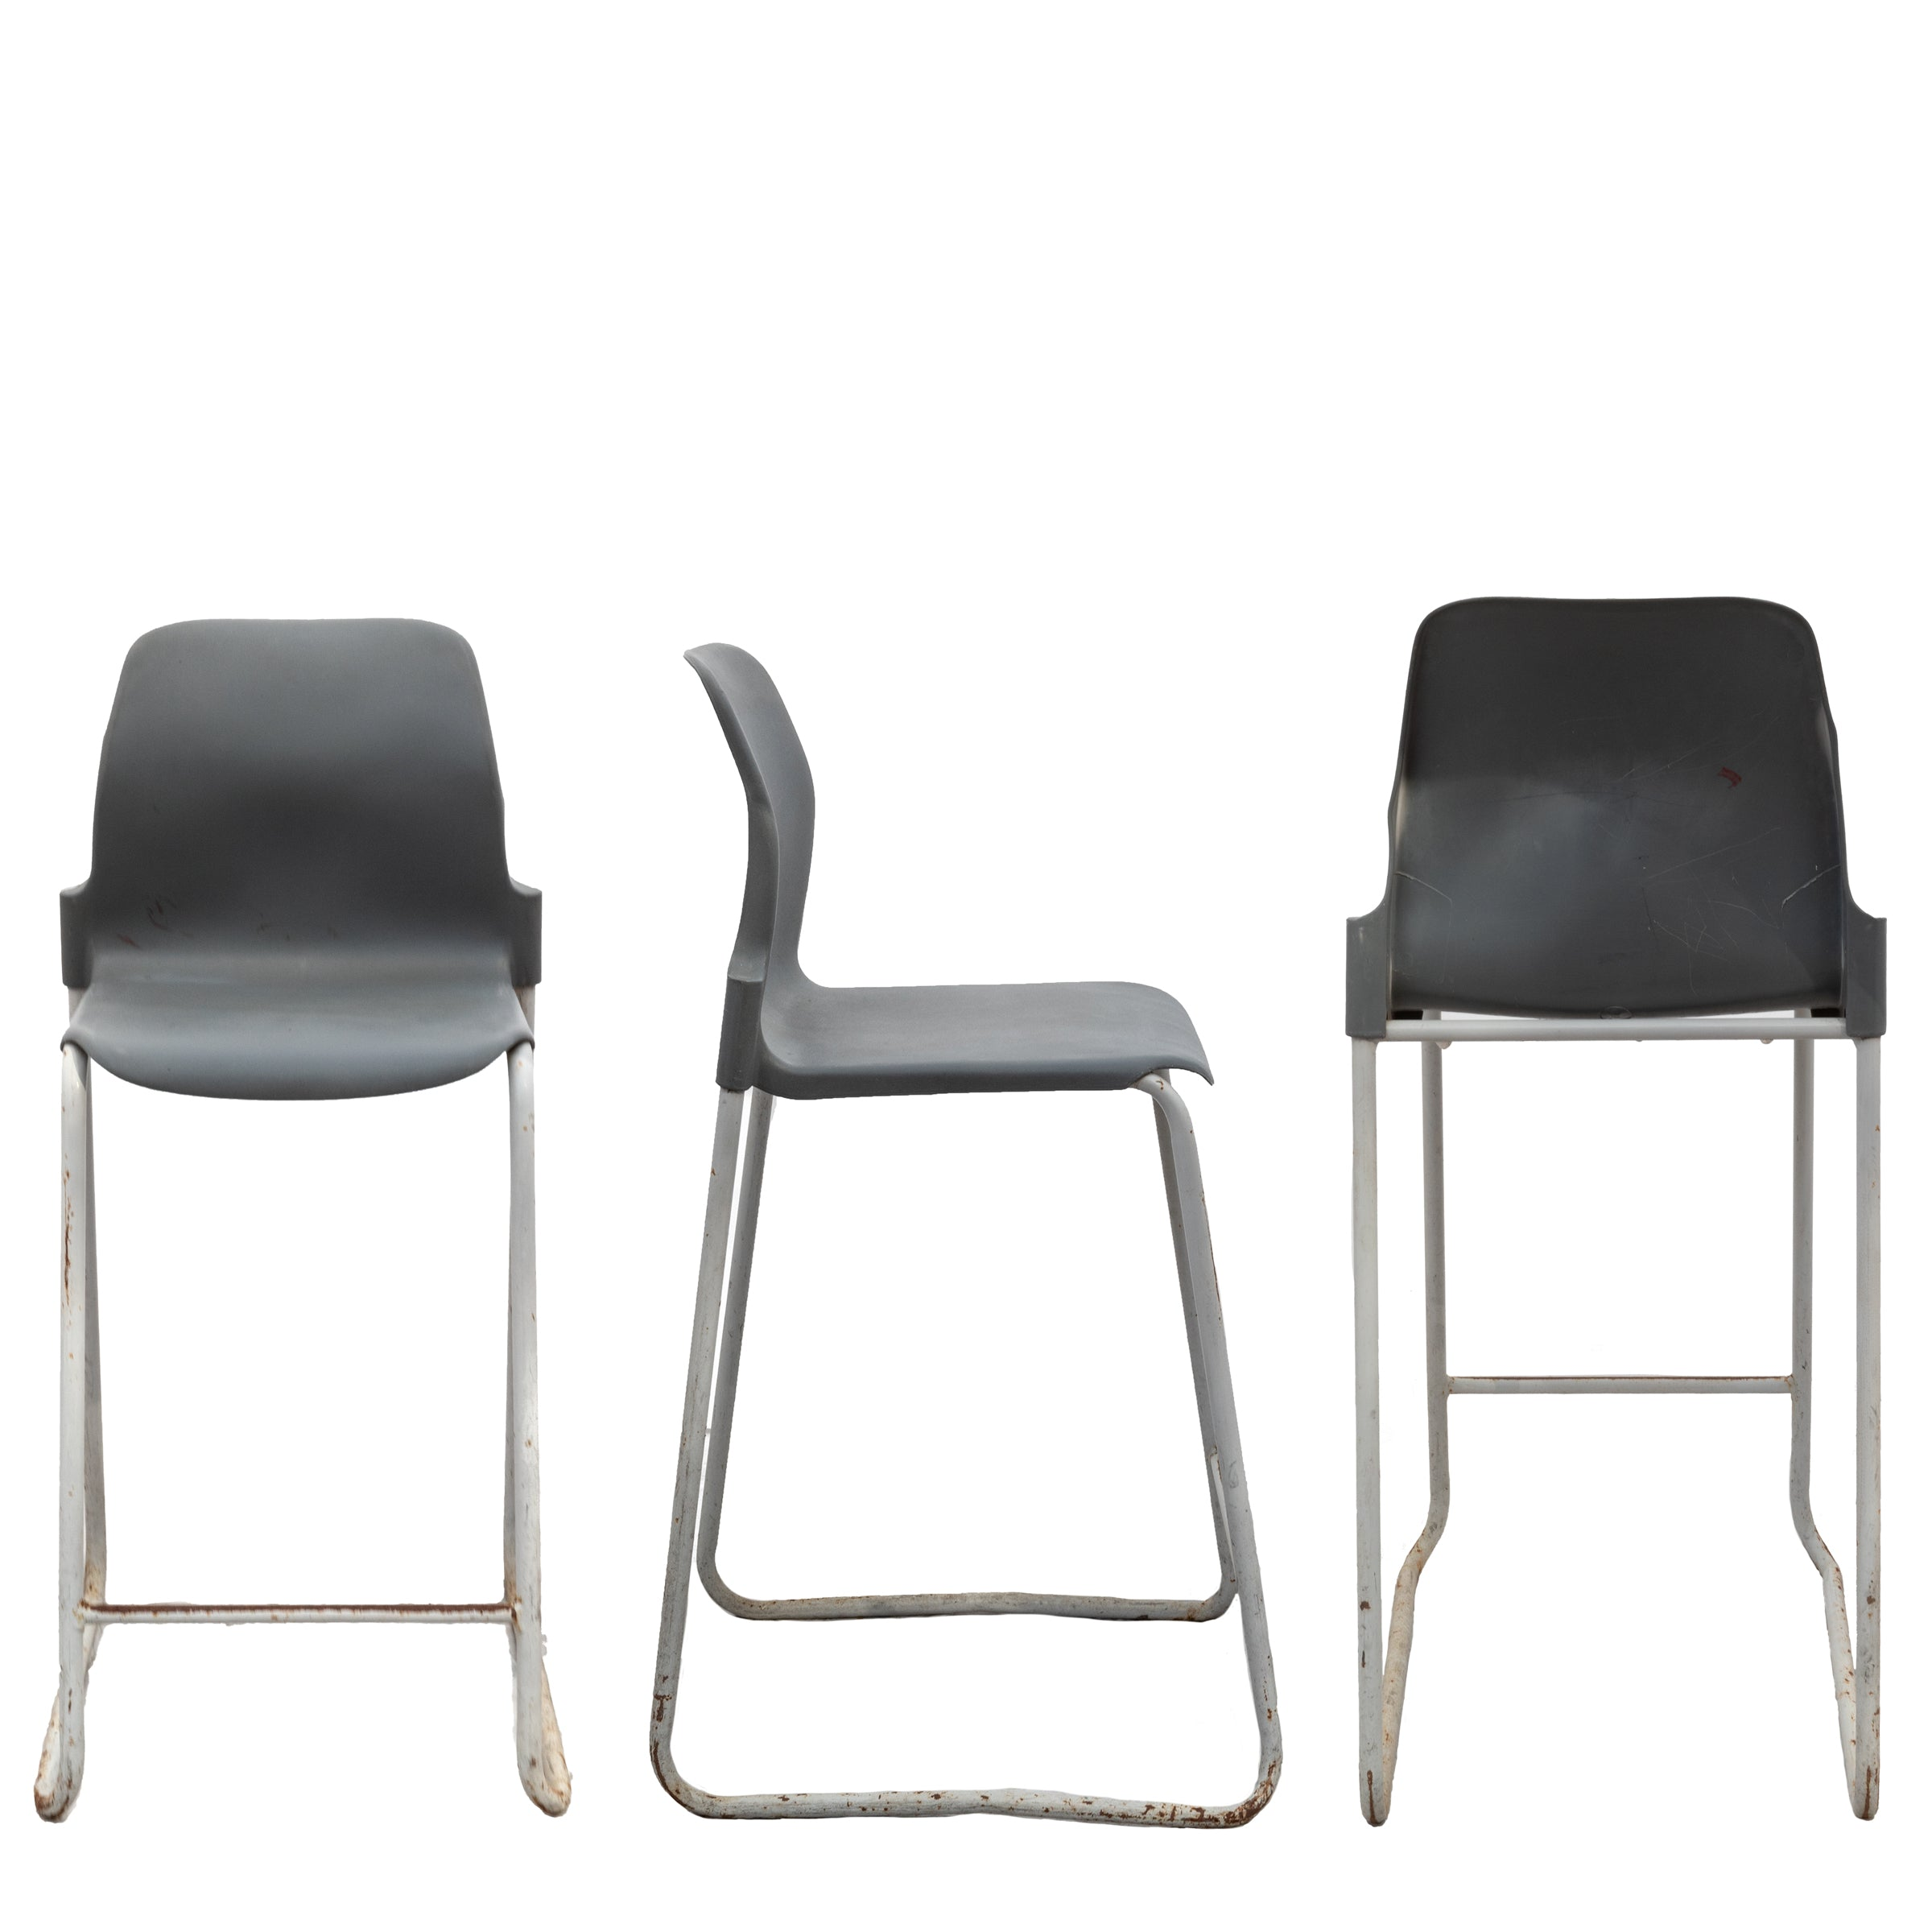 Set of 55 Mid-Century Style Stackable Stools